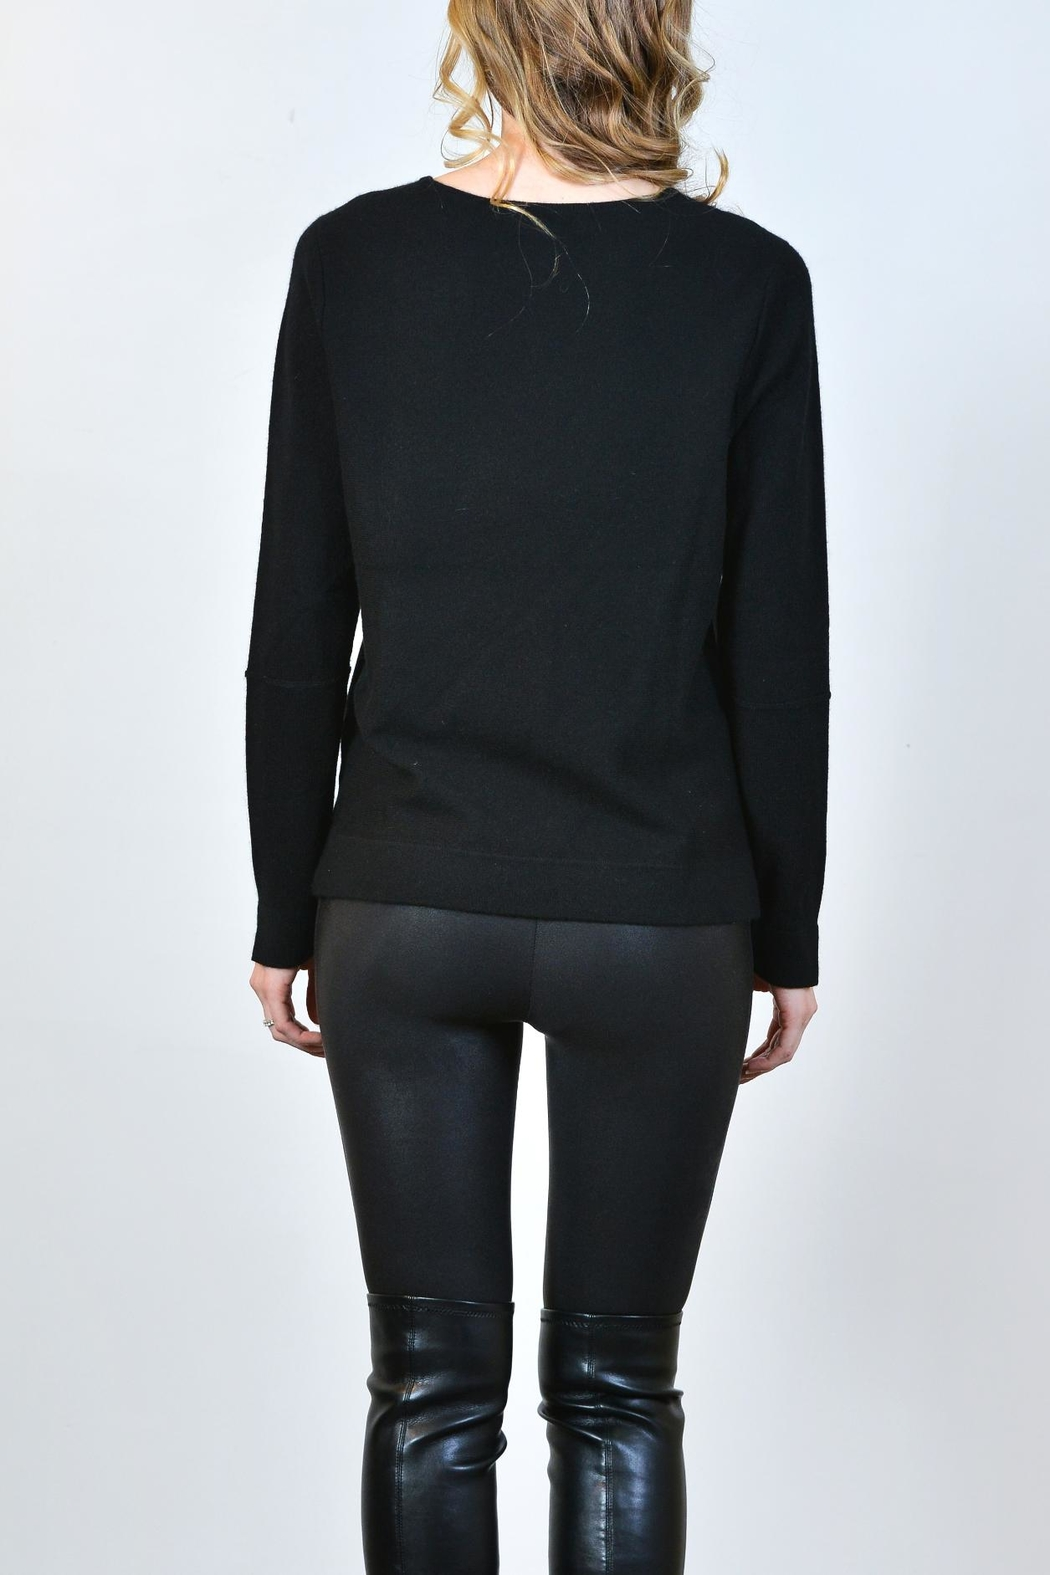 Lisa Todd Crossword Puzzle Cashmere Sweater - Front Full Image